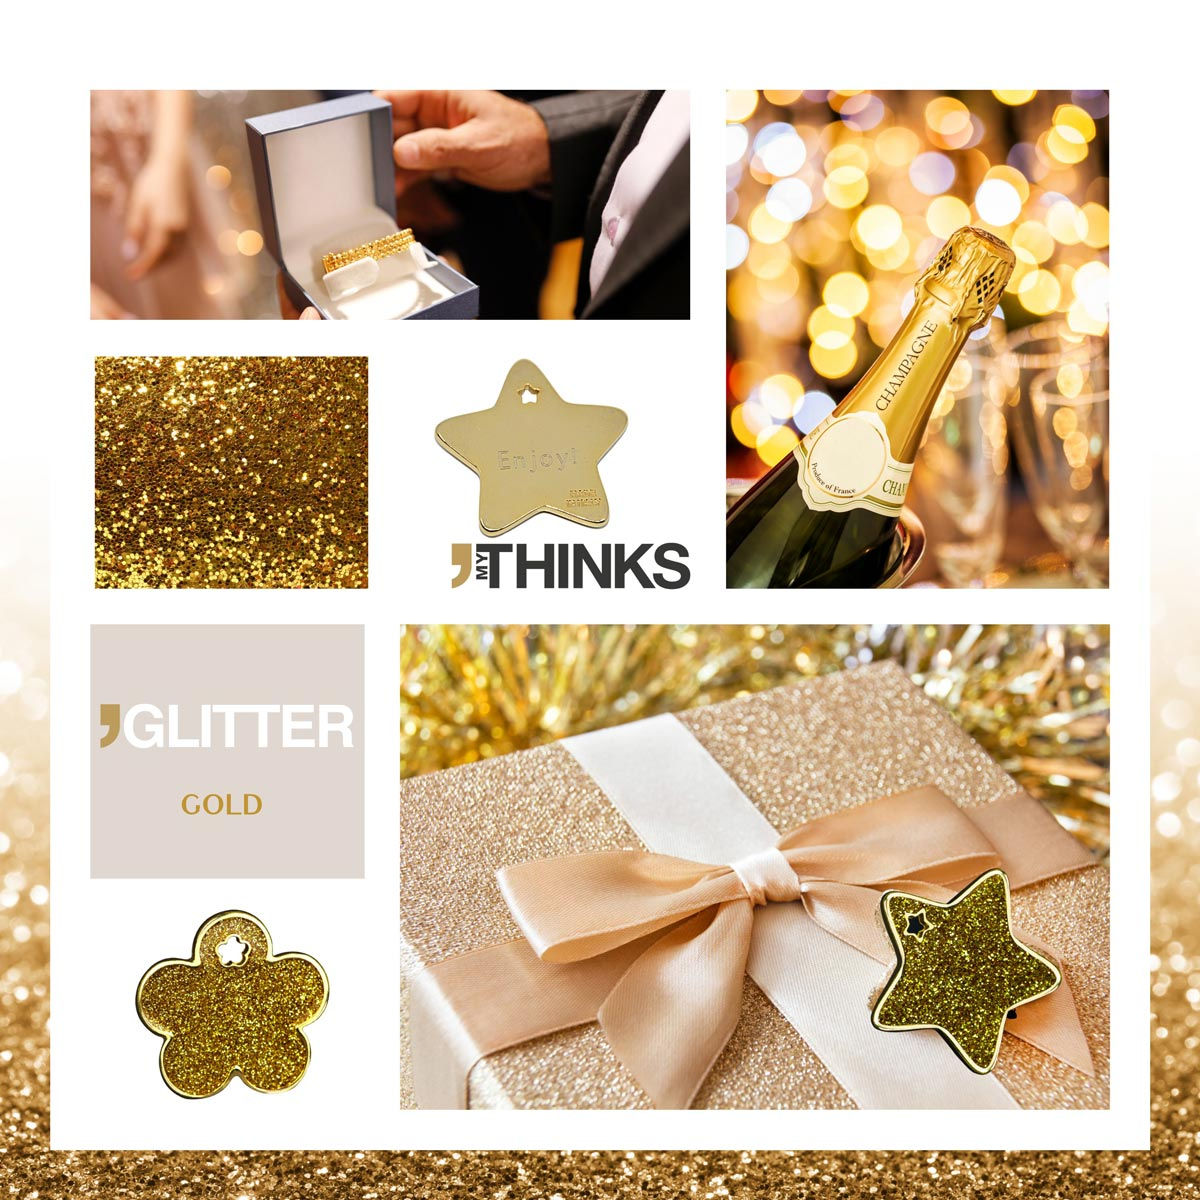 Mood board Glitter collection gifts with shiny golden enamelling on 24 CT Gold coated zamak charm personalized for the gift market